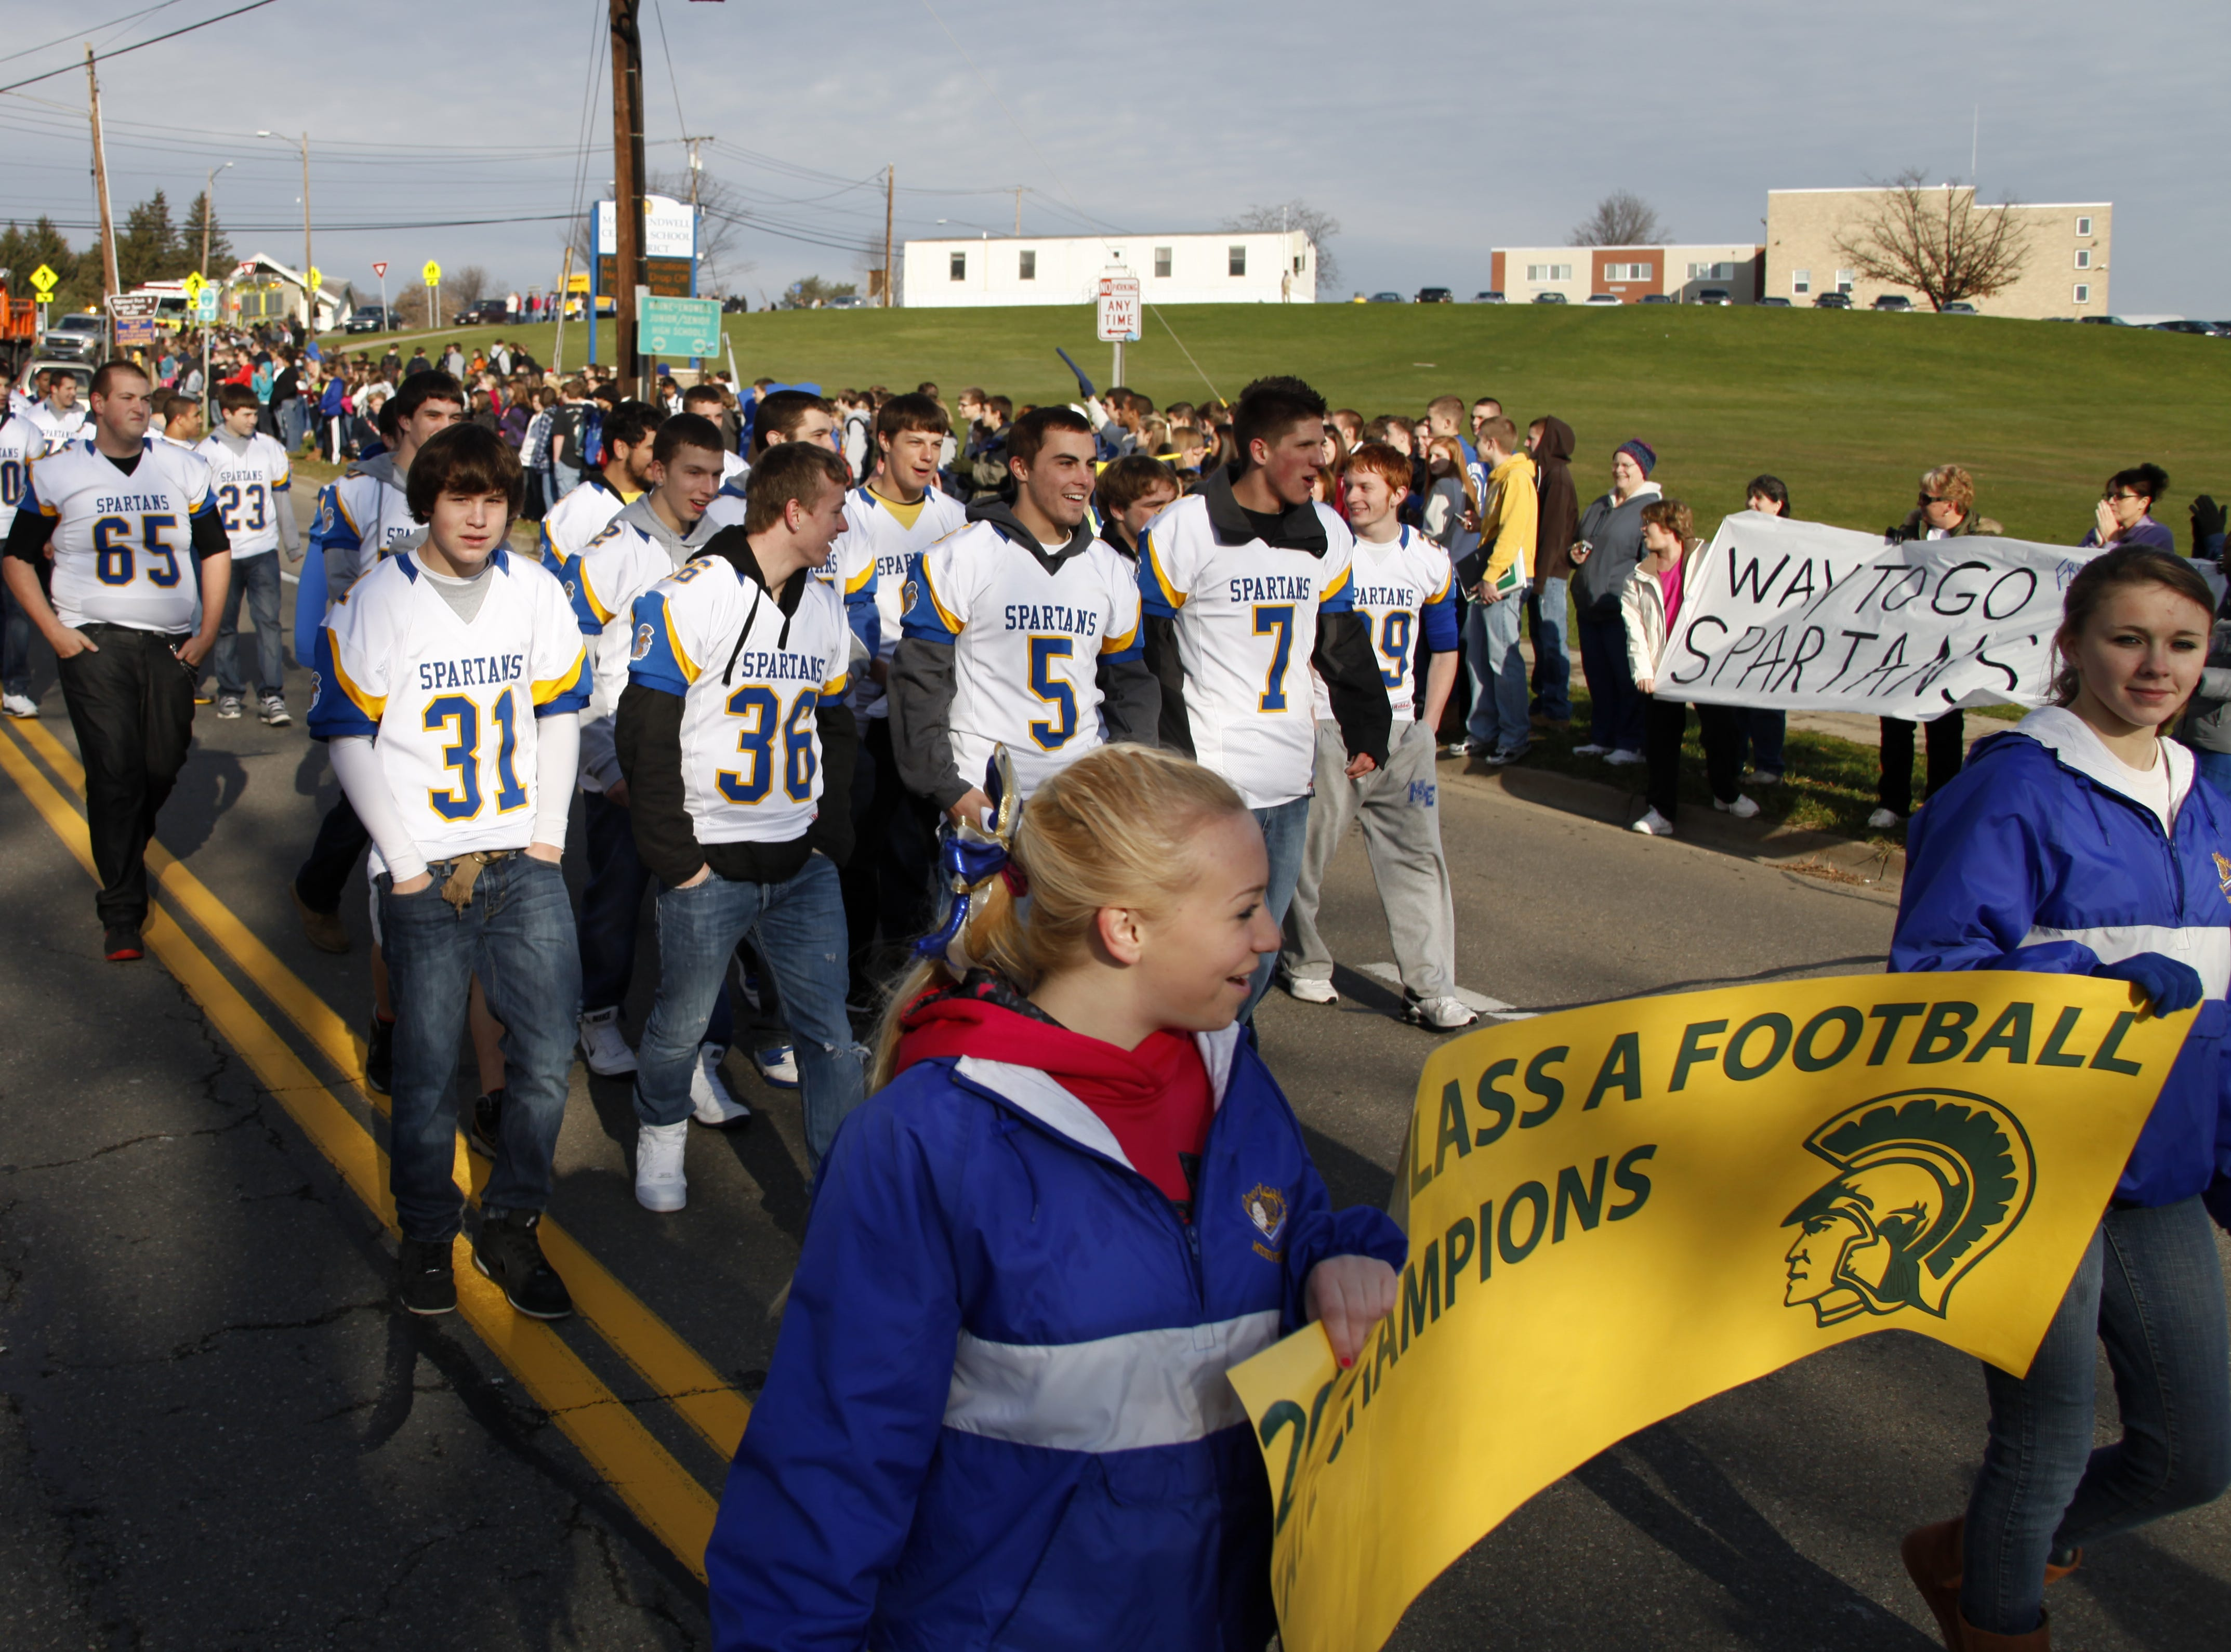 Students of Maine Endwell schools and members of the community line the streets of Hooper Road and Farm to Market Road in 2011 to observe the parade held for ME High School's Fall athletic teams that participated in state competitions.